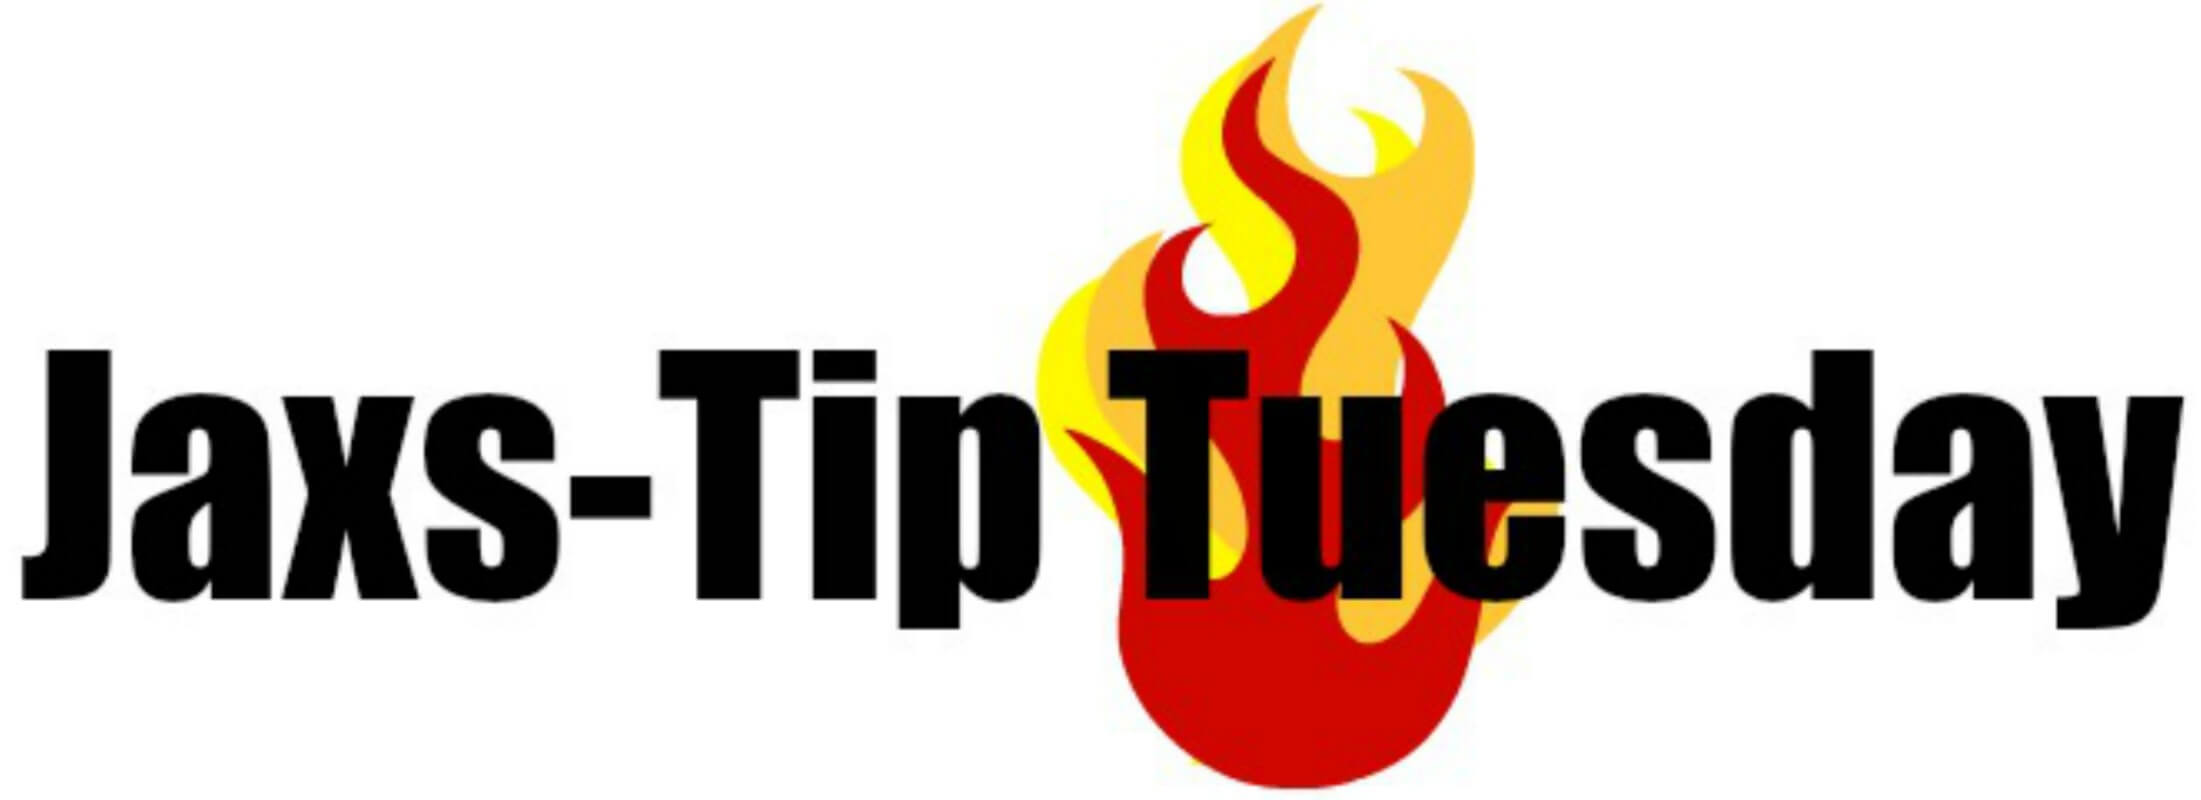 Jaxs-Tip Tuesday Washing Fruits and Vegetables with Baking Soda